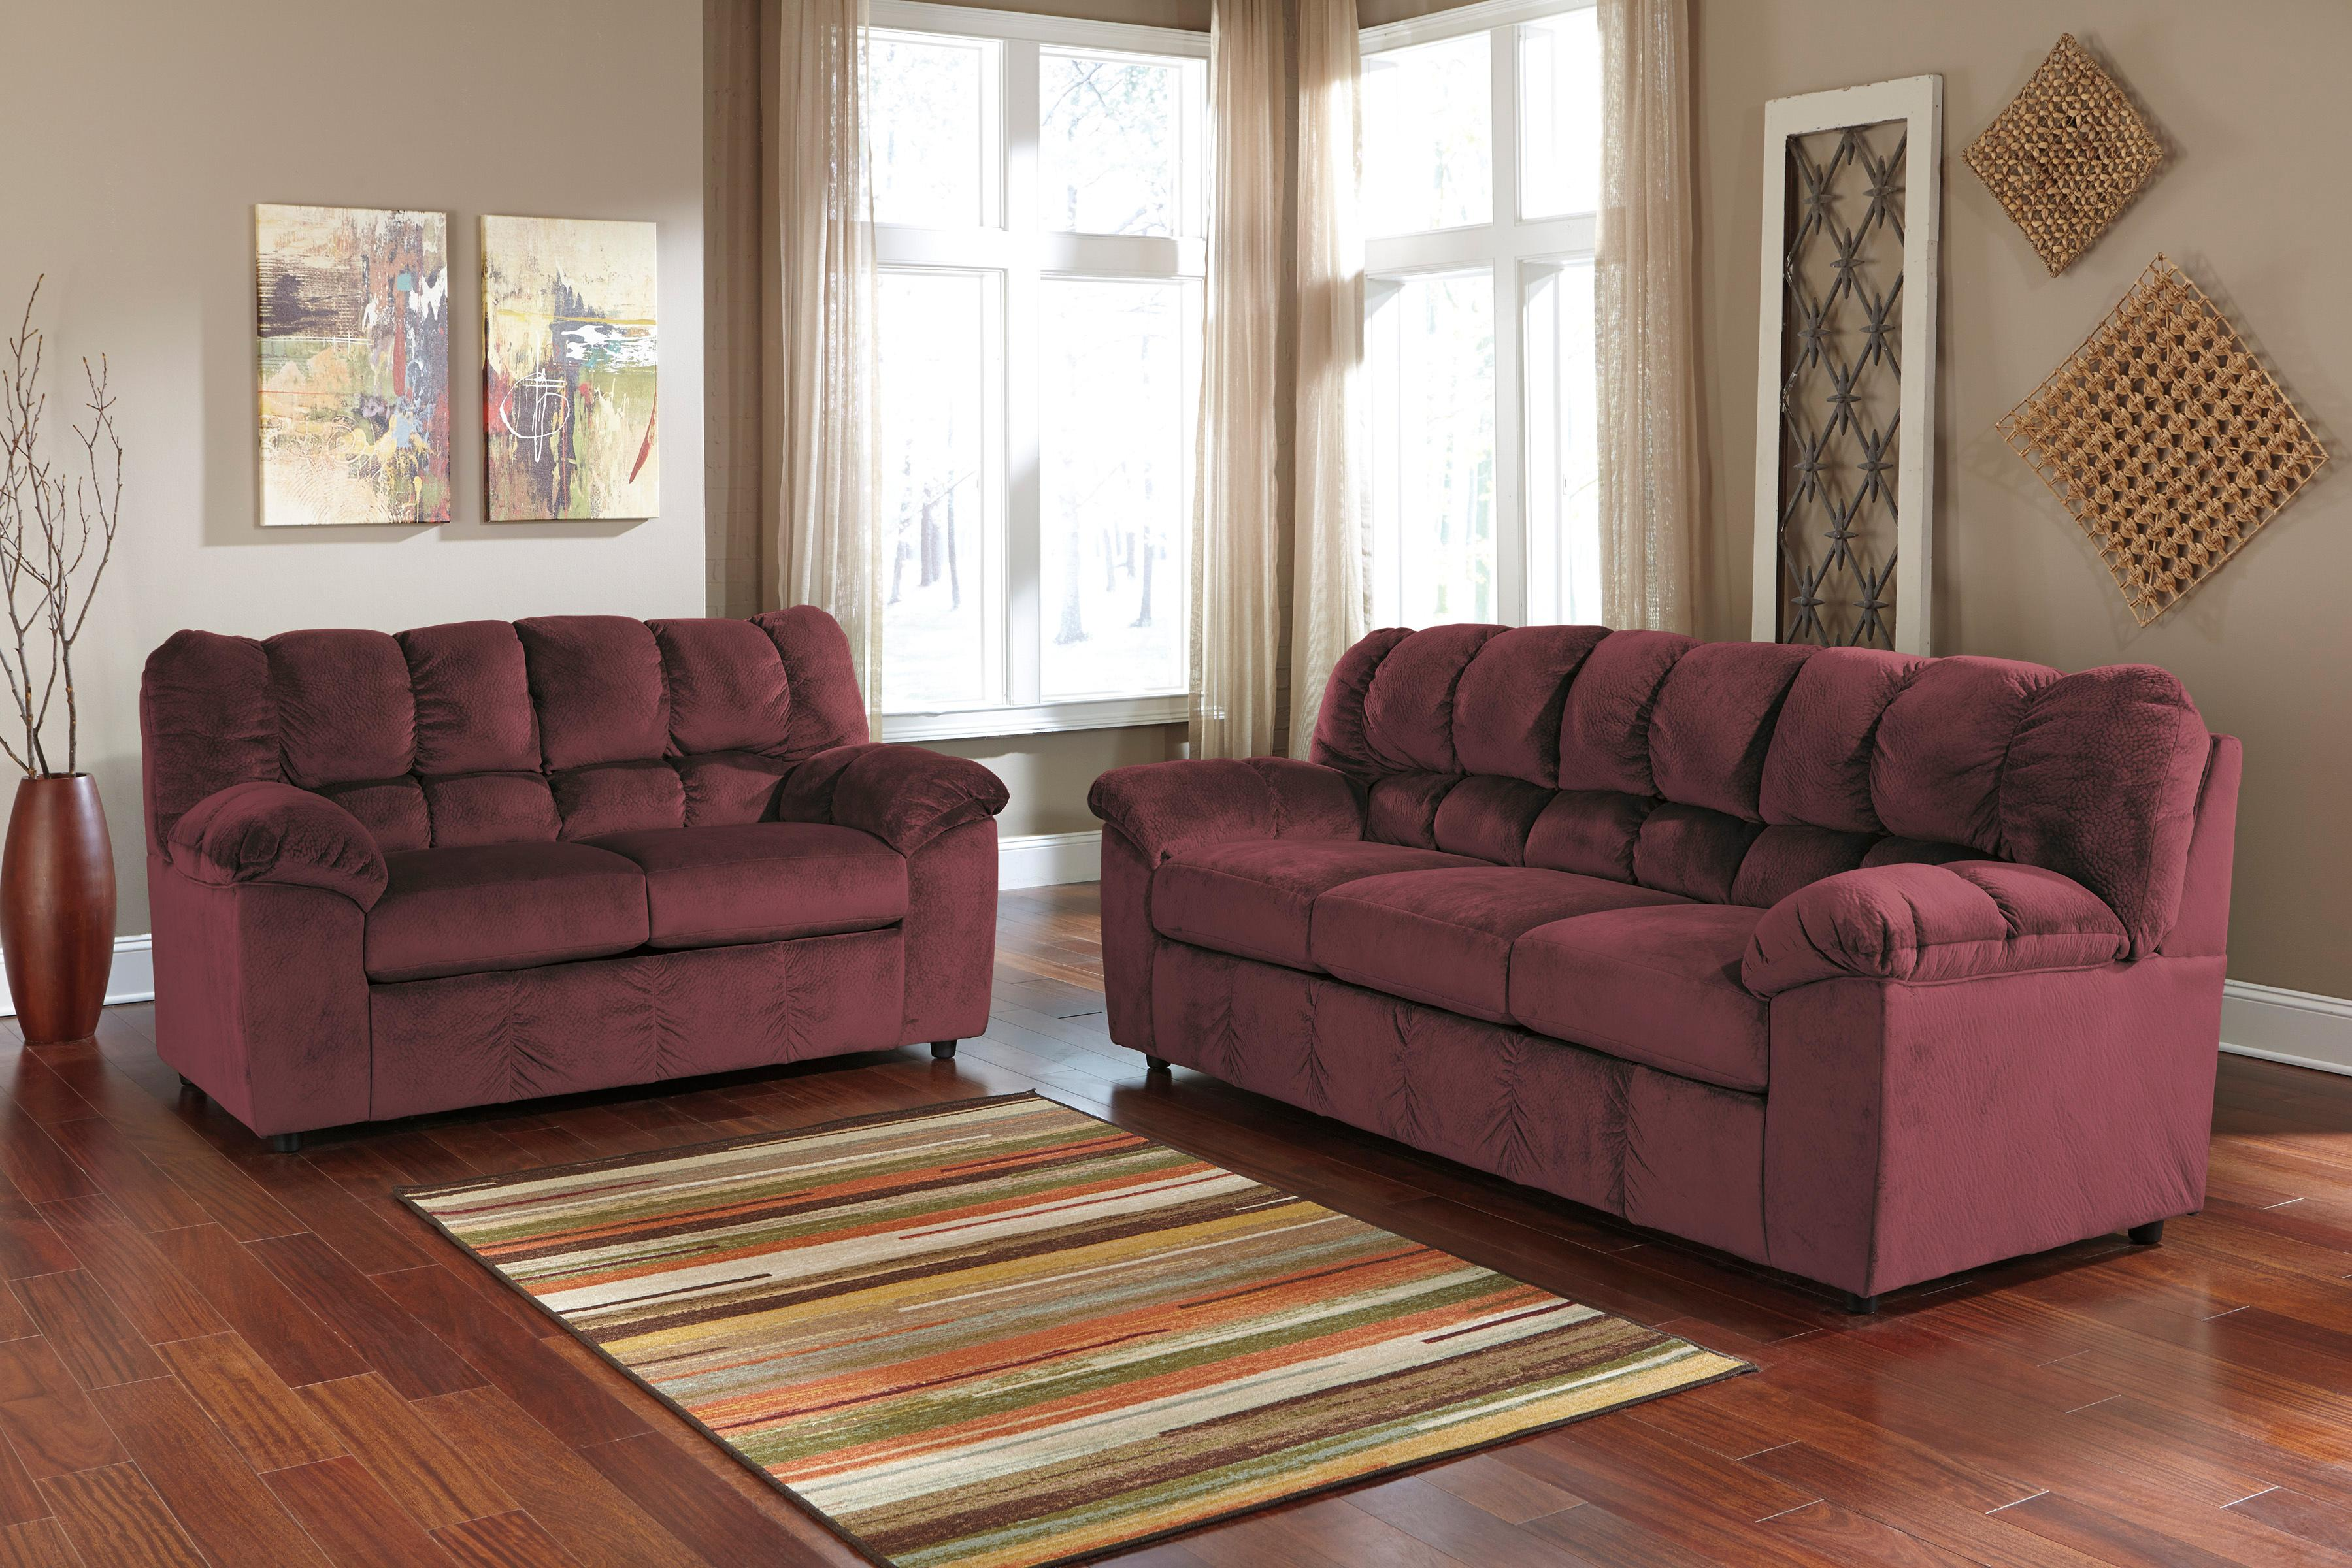 Signature Design by Ashley Julson - Burgundy Stationary Living Room Group - Item Number: 26602 Living Room Group 1